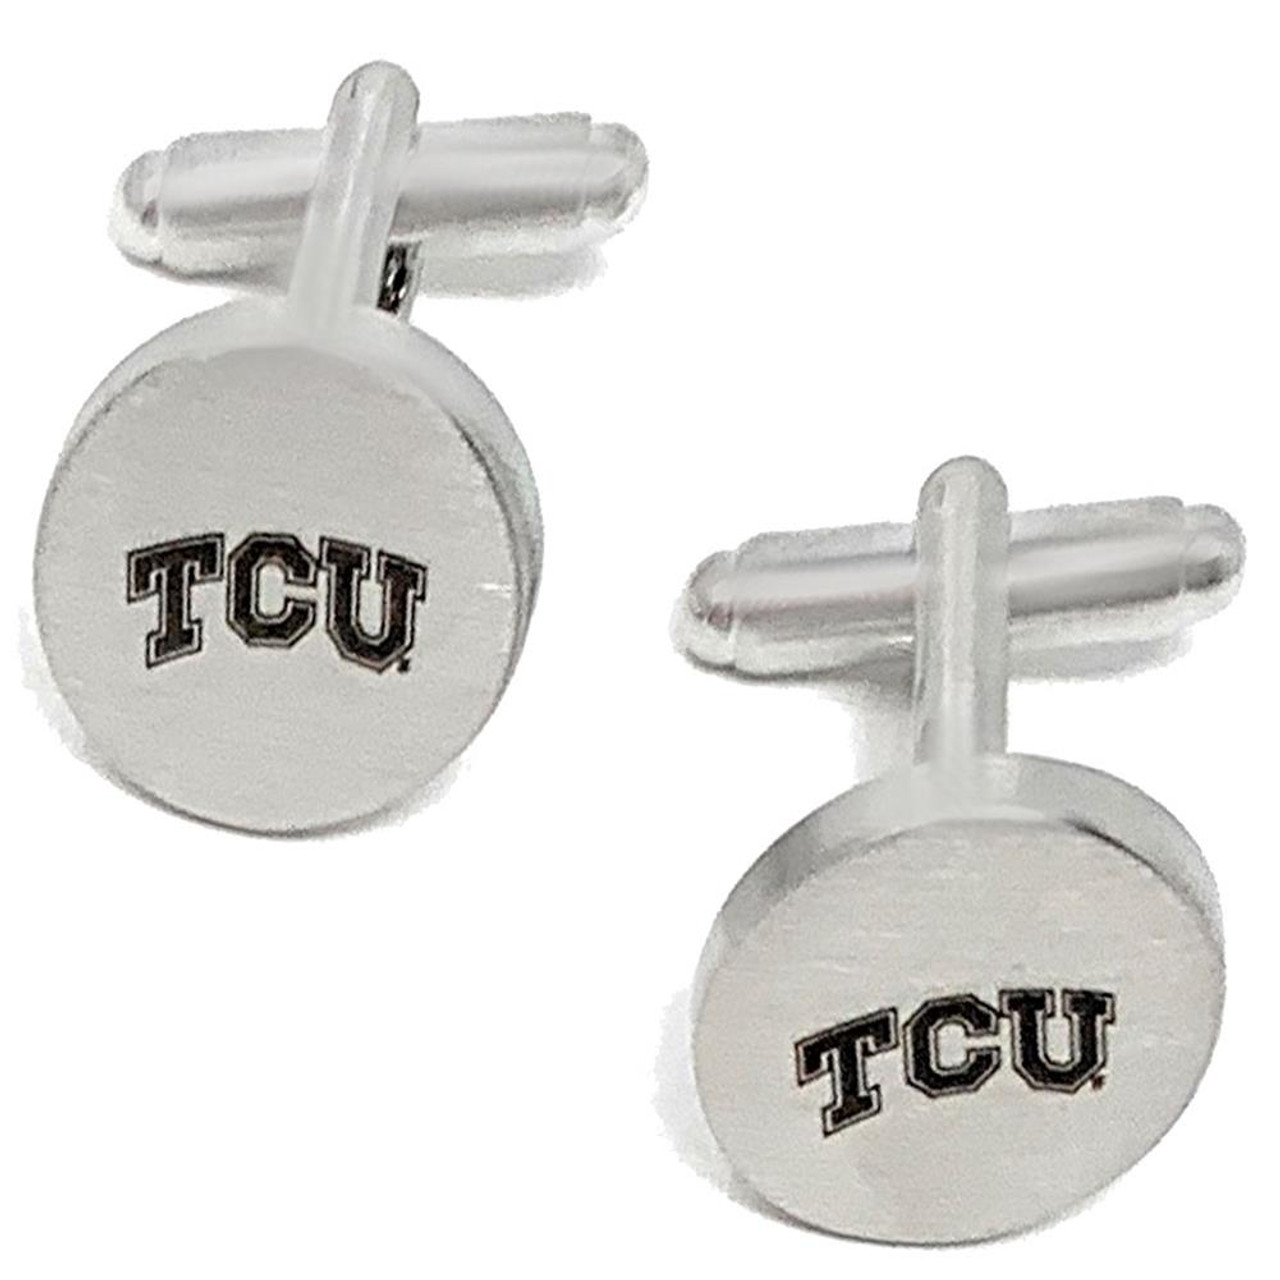 TCU Texas Christian Cuff Links Silver Cufflink Set